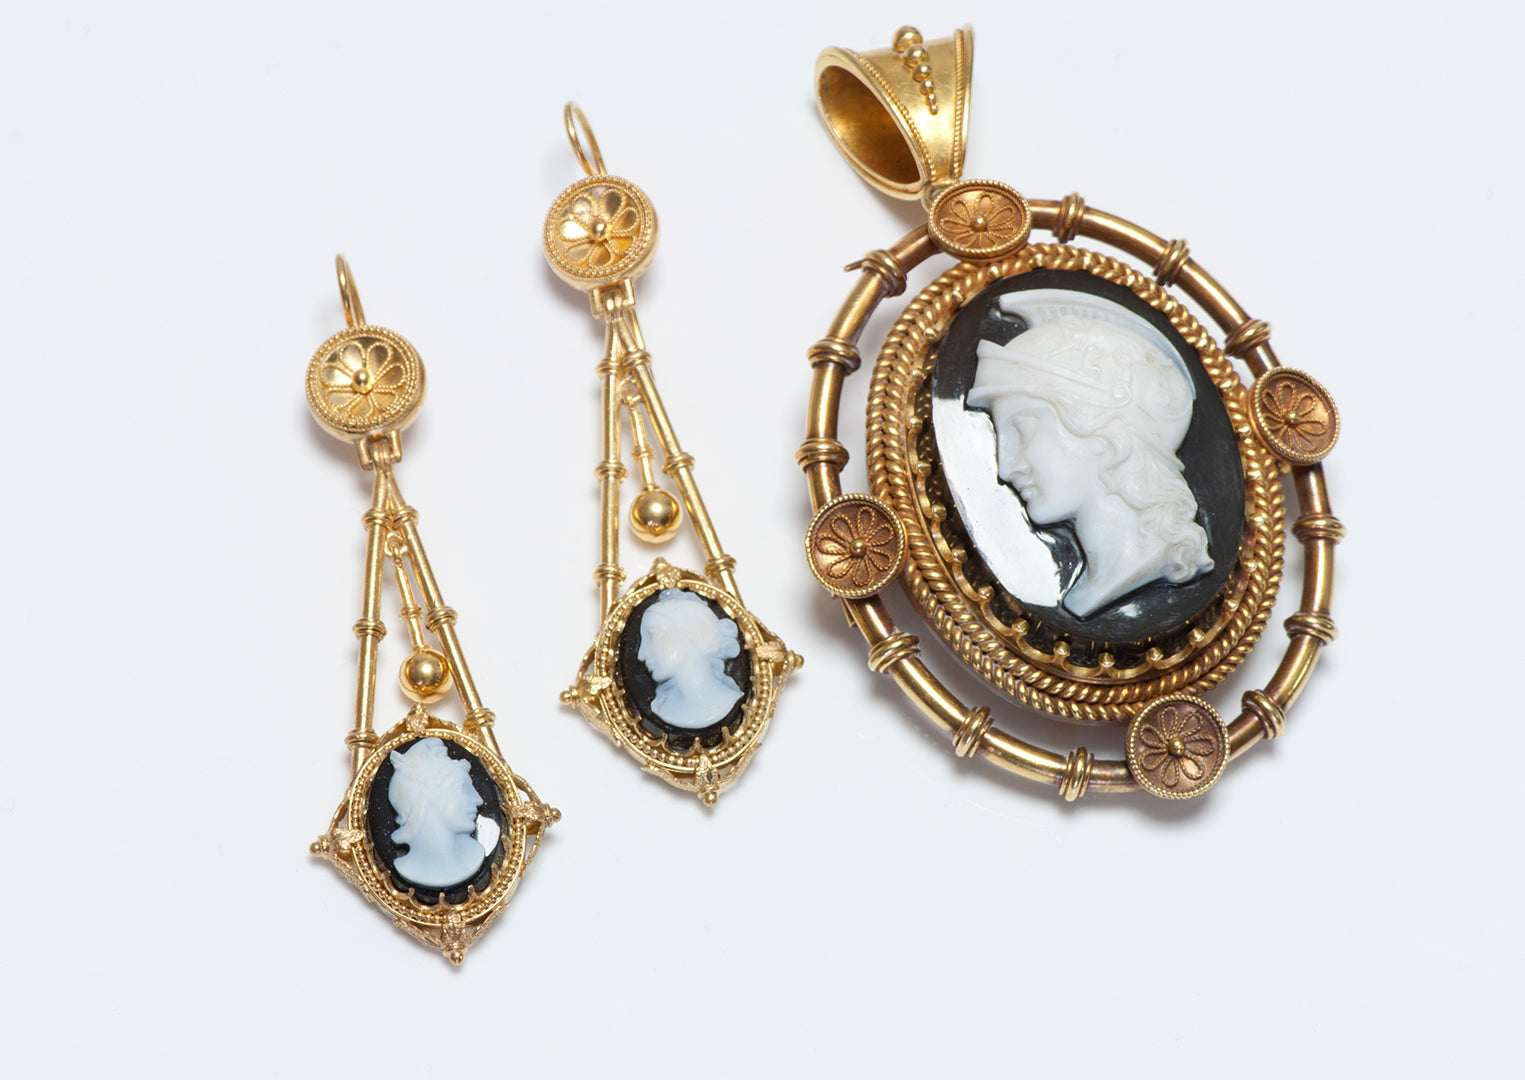 antique-gold-cameo-earrings-pendant